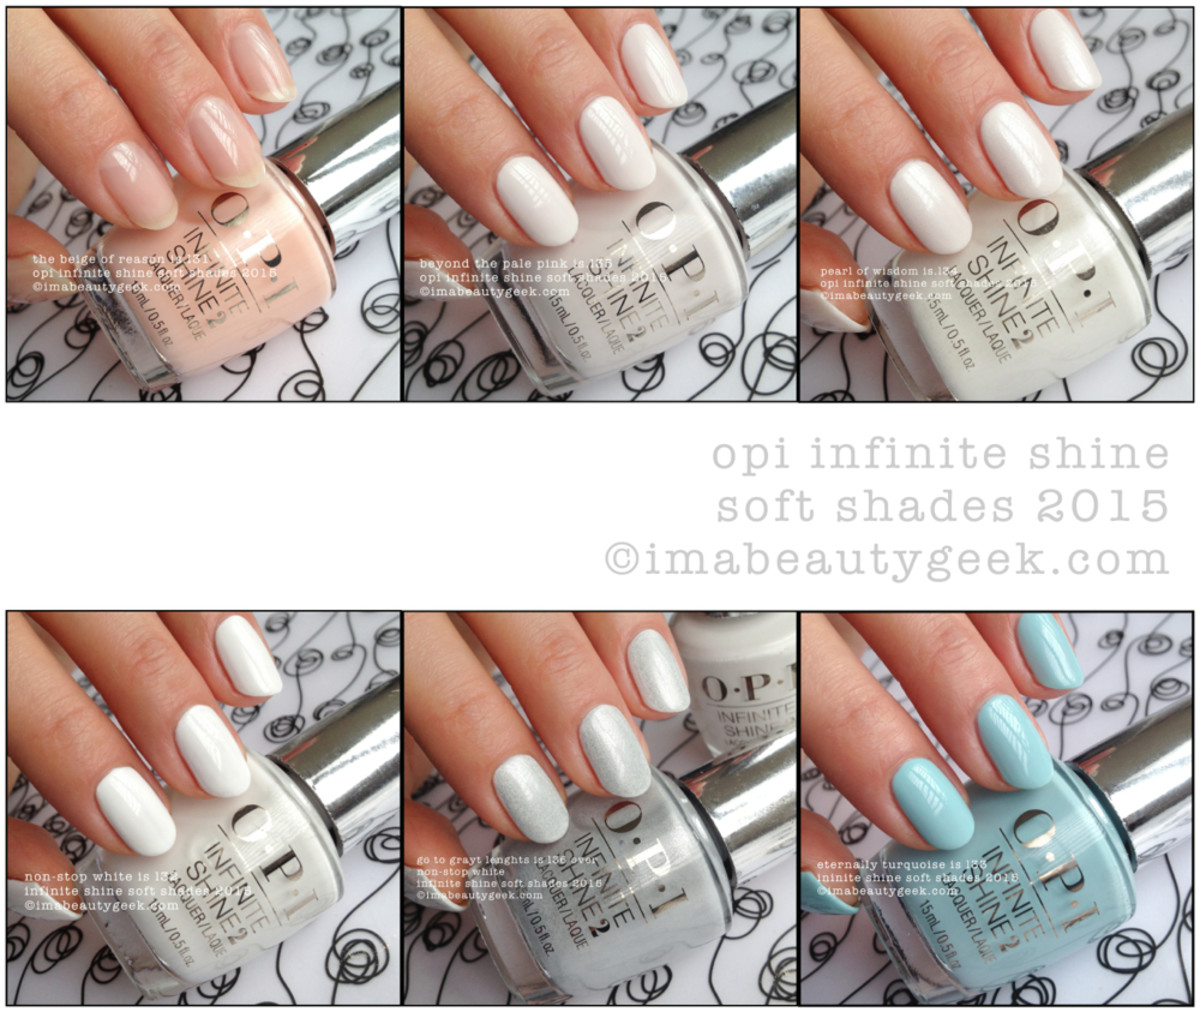 OPI Infinite Shine Soft Shades 2015 ManiGeek Composite